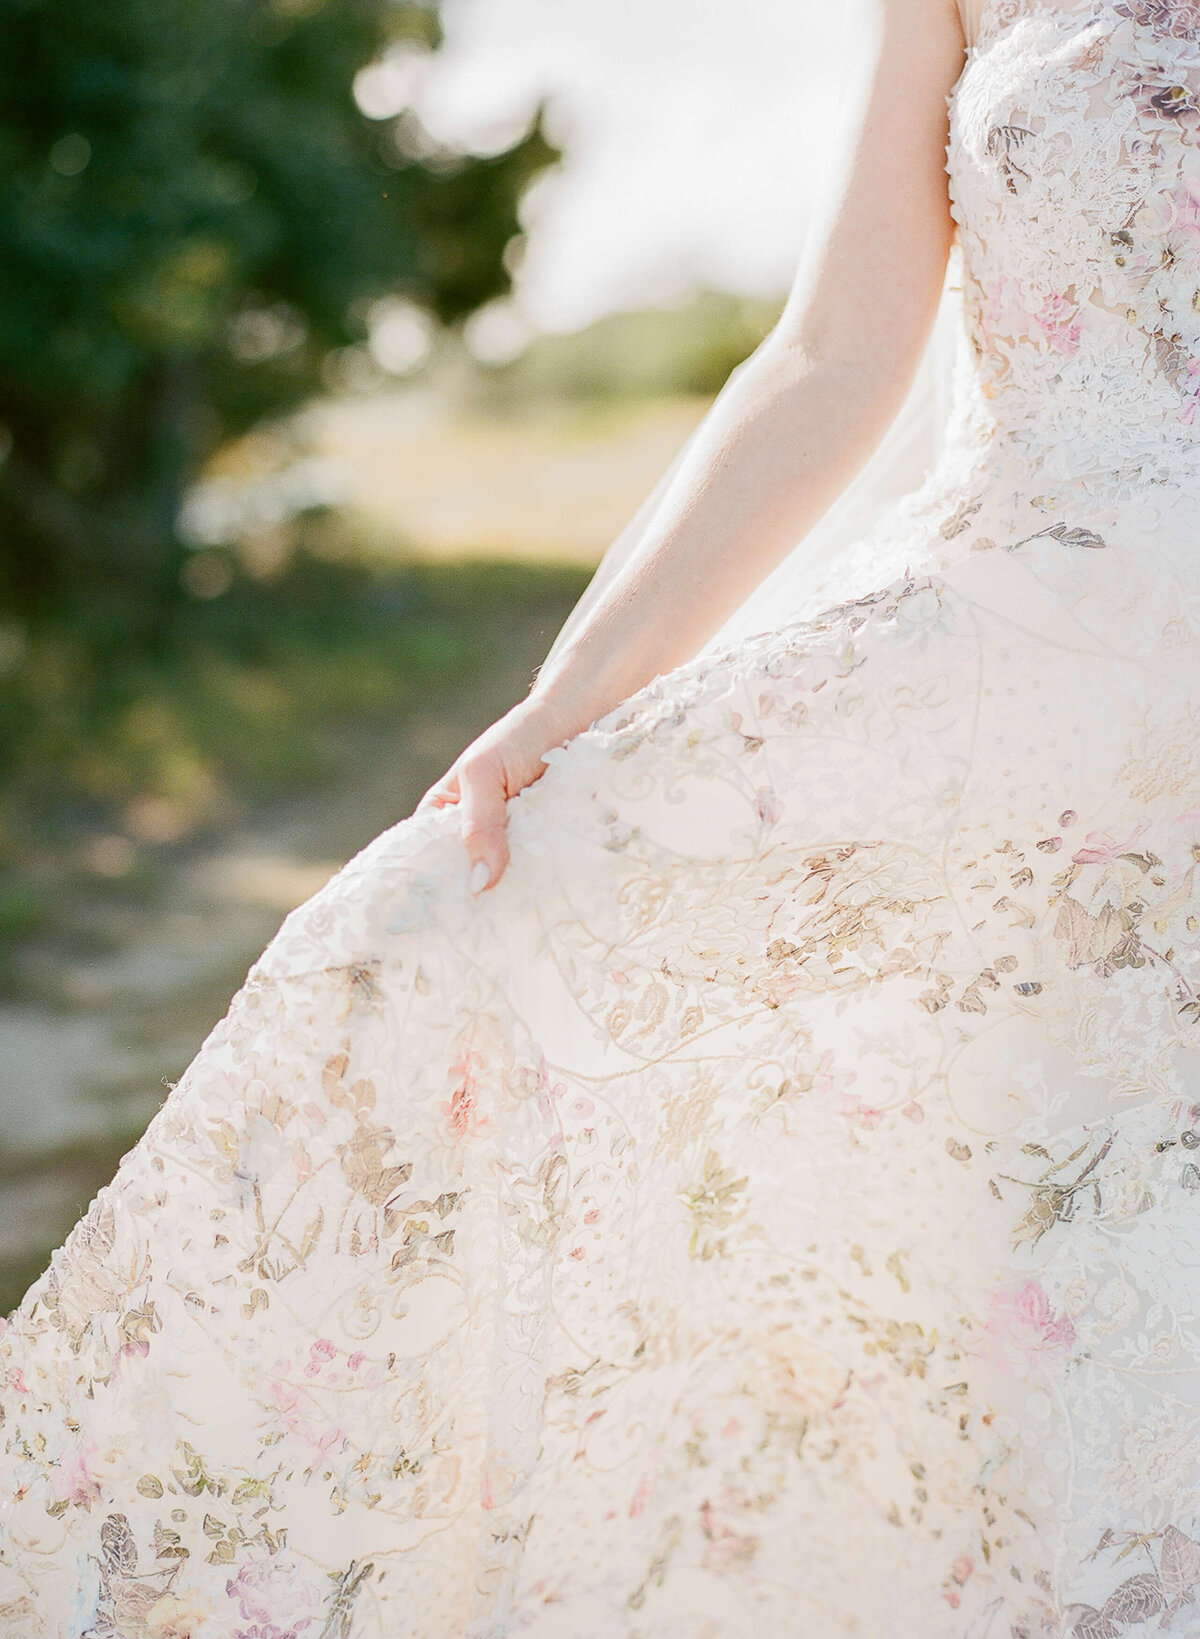 kiawah-river-wedding-clay-austin-photography-29